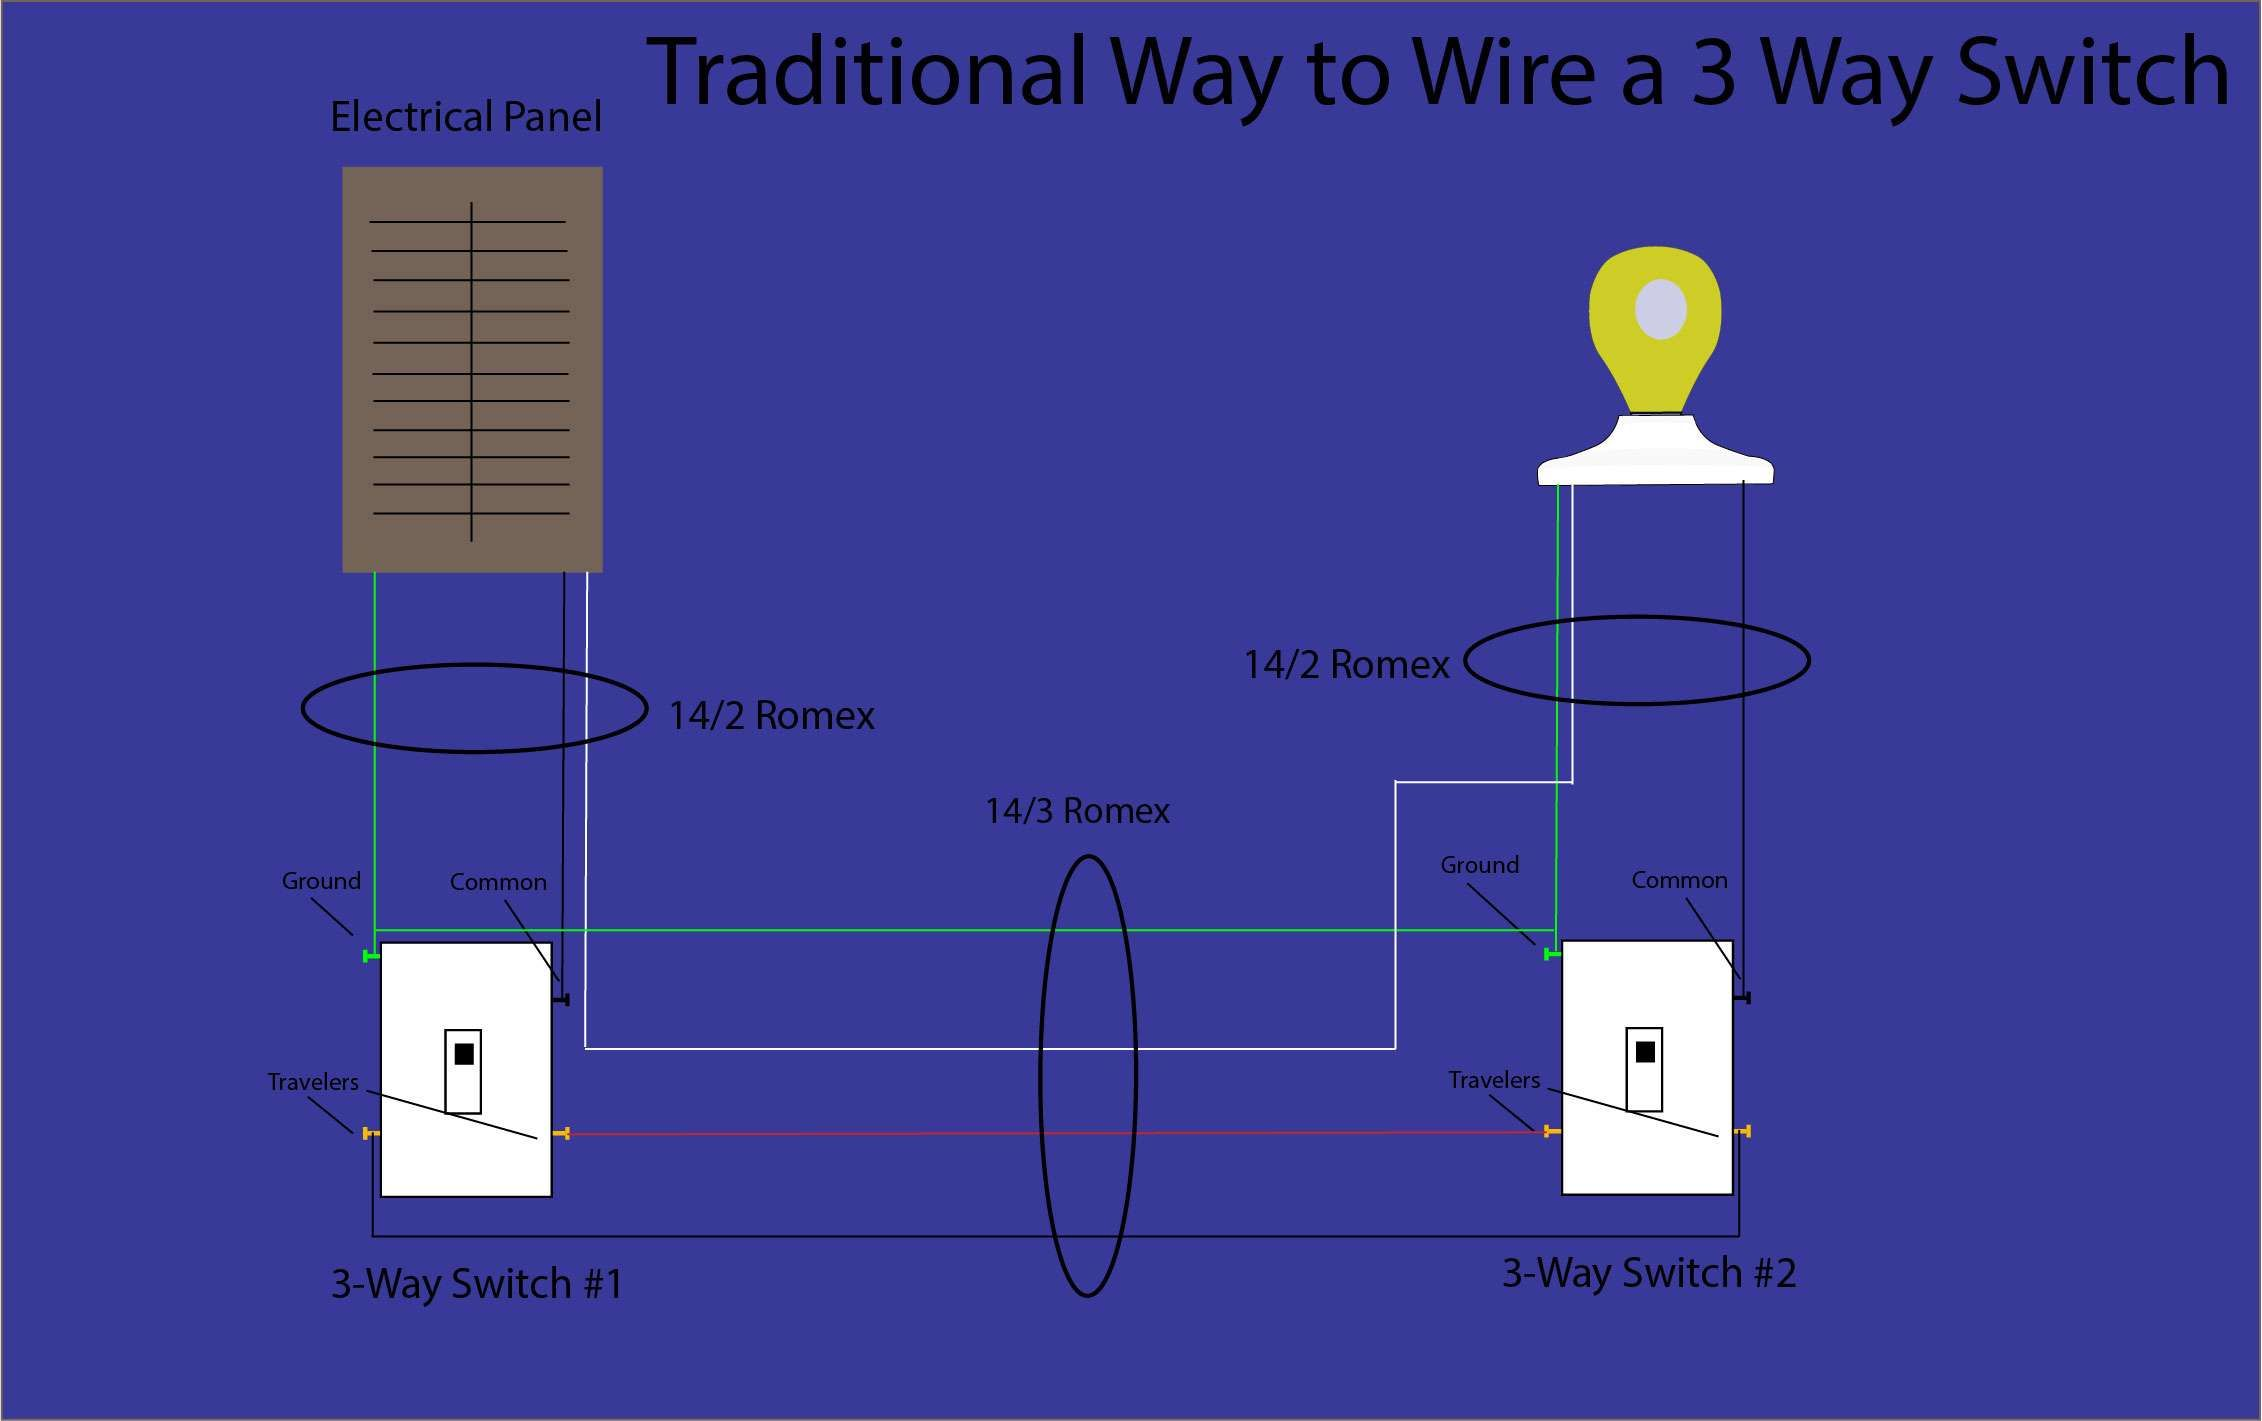 Wiring Diagram 3 Way Switch Awesome How To Wire A 3 Way Switch Smart Home Mastery Three Way Switch Electrical Panel 3 Way Switch Wiring